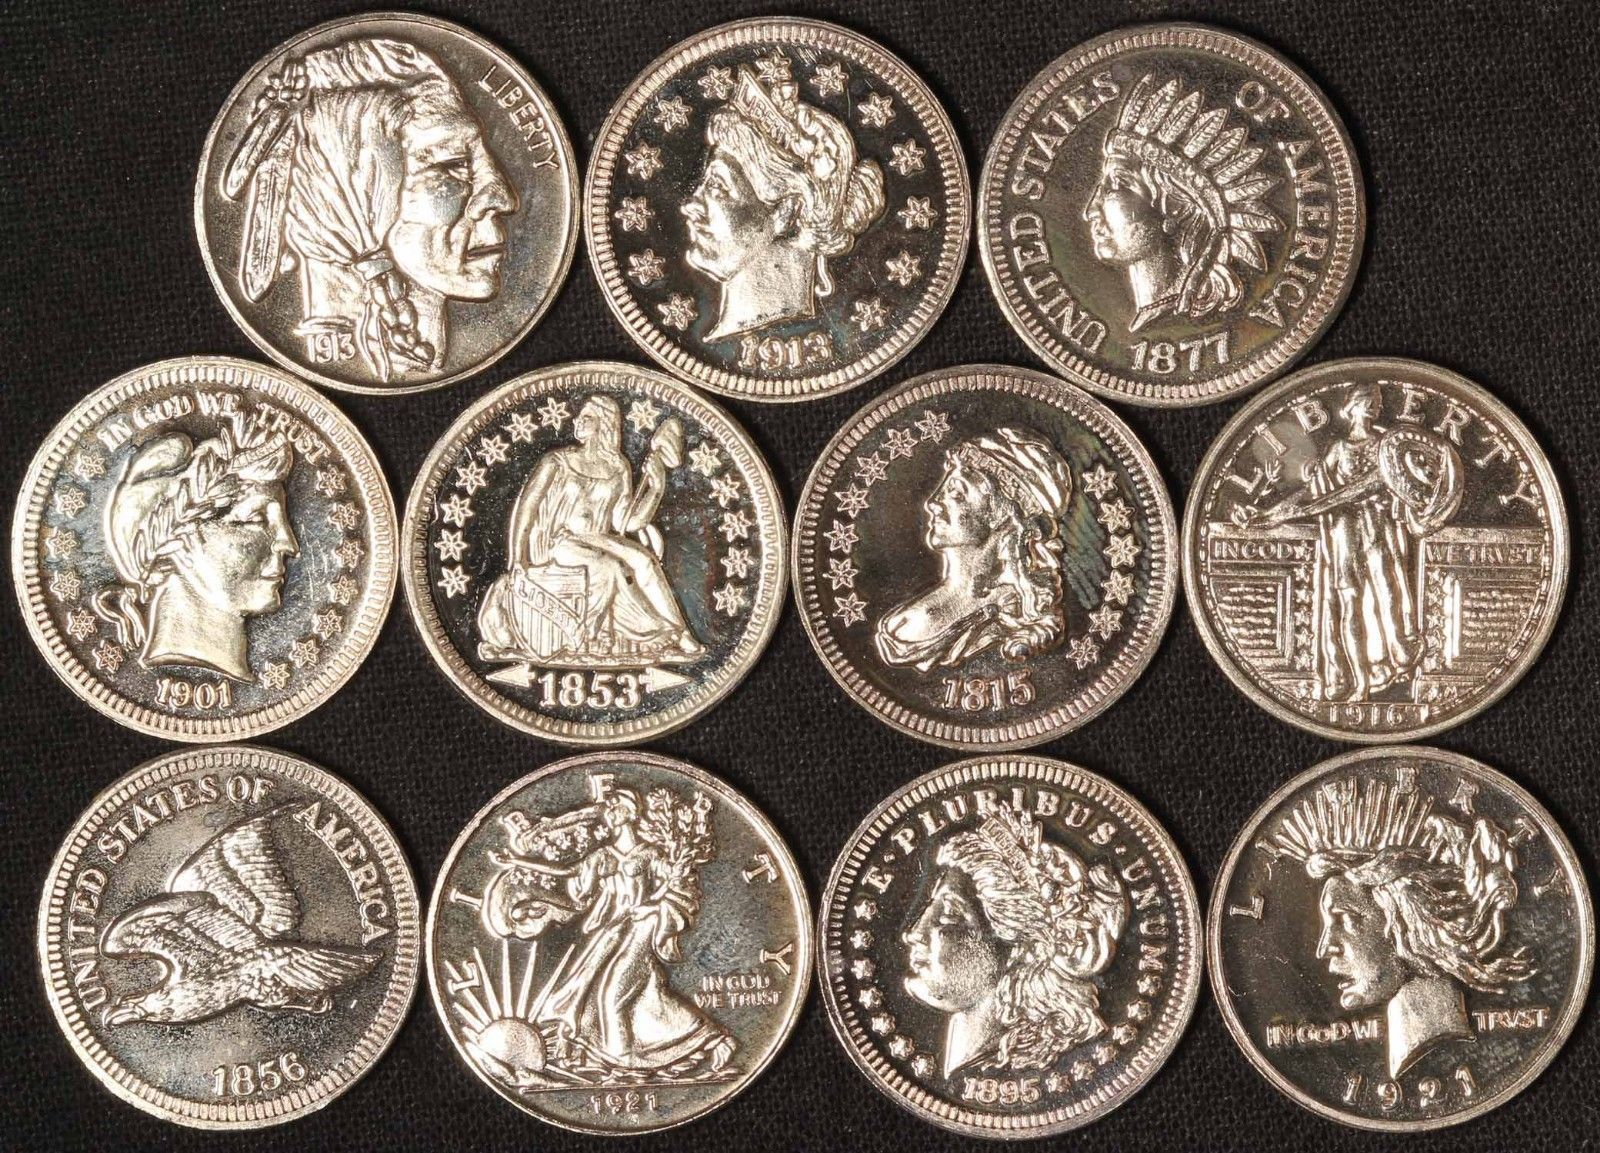 11 Miniature Coins Of The United States 18mm 1 10 Oz Silver Free Ship Usa Shopnetone Miniatures The Unit Coins